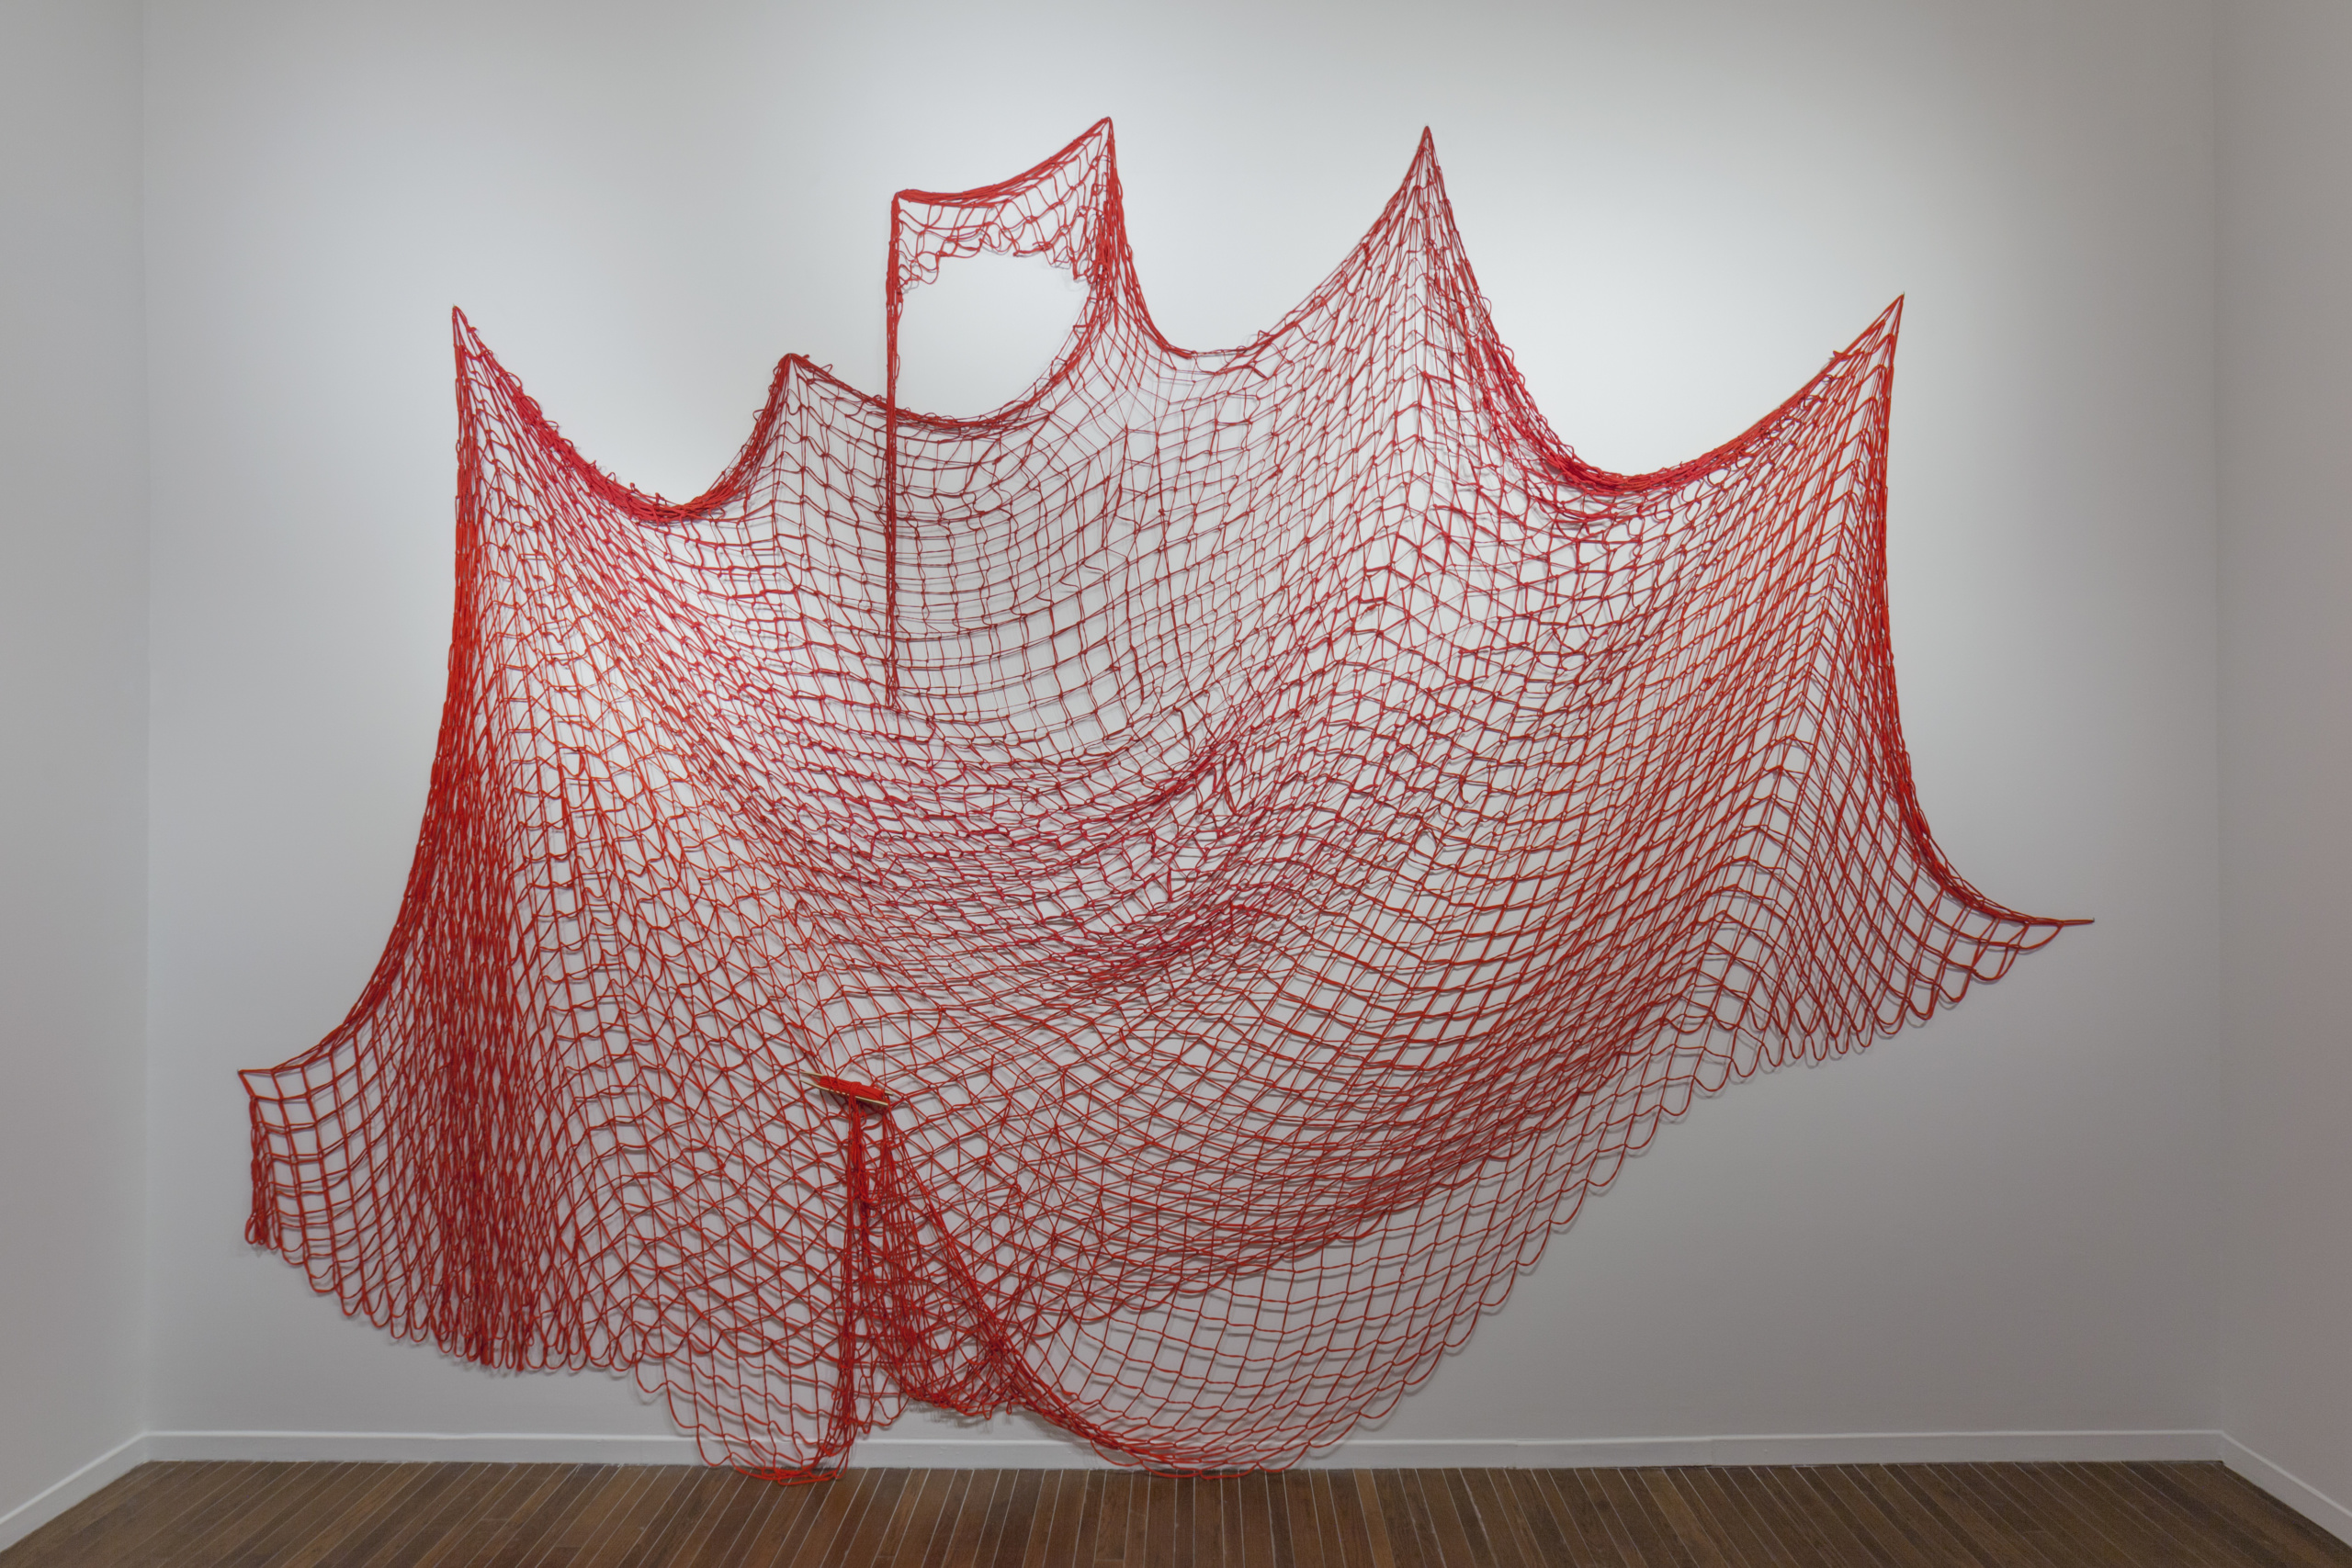 Installation view, Nadia Myre, Red Net (working title), 2019. Recycled cotton jersey.